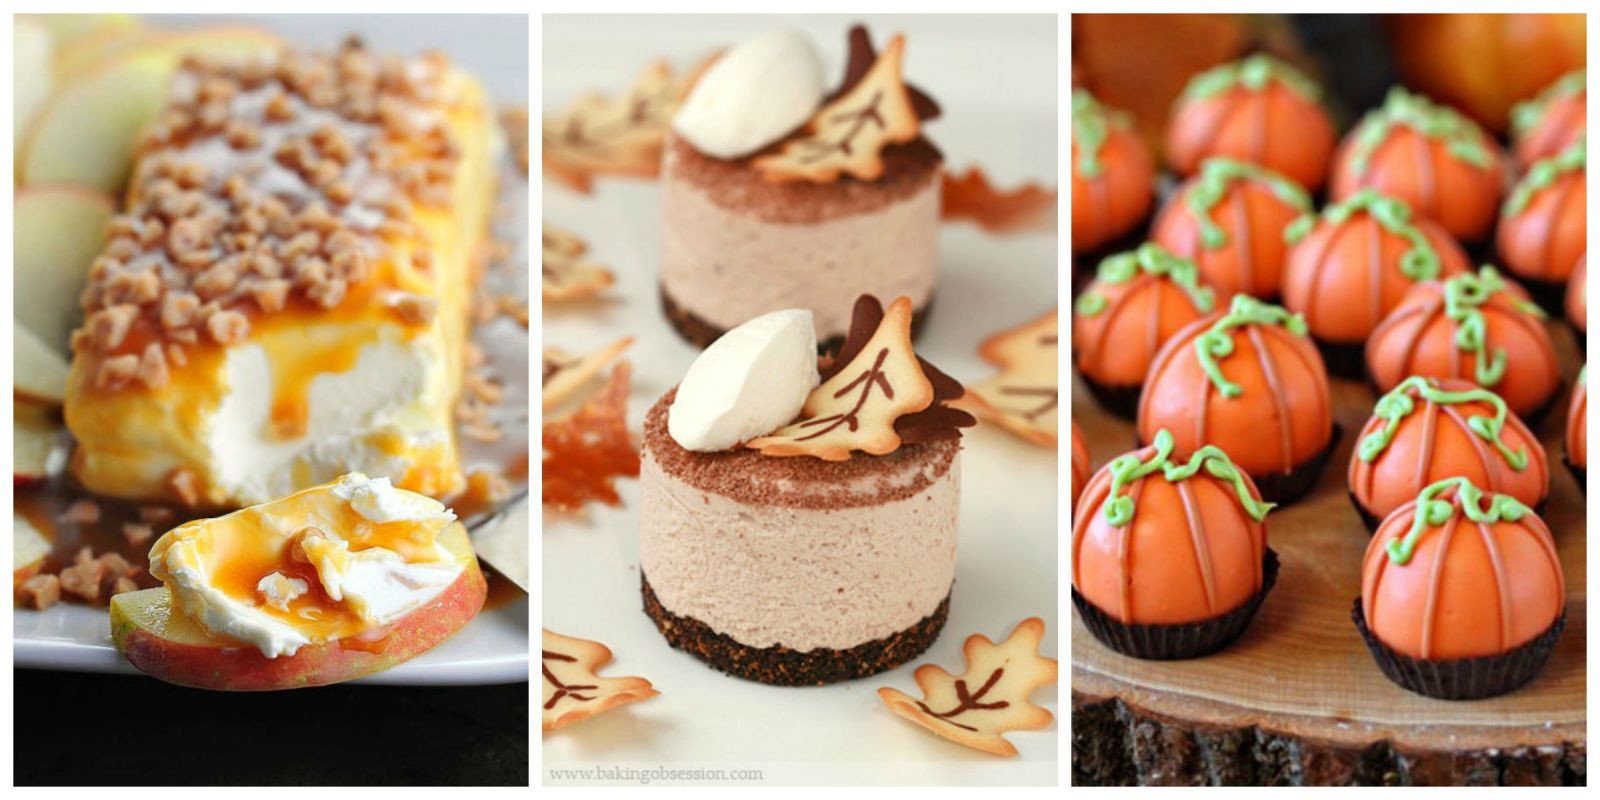 Easy Fall Dessert Recipes  35 Easy Fall Dessert Recipes Best Treats for Autumn Parties